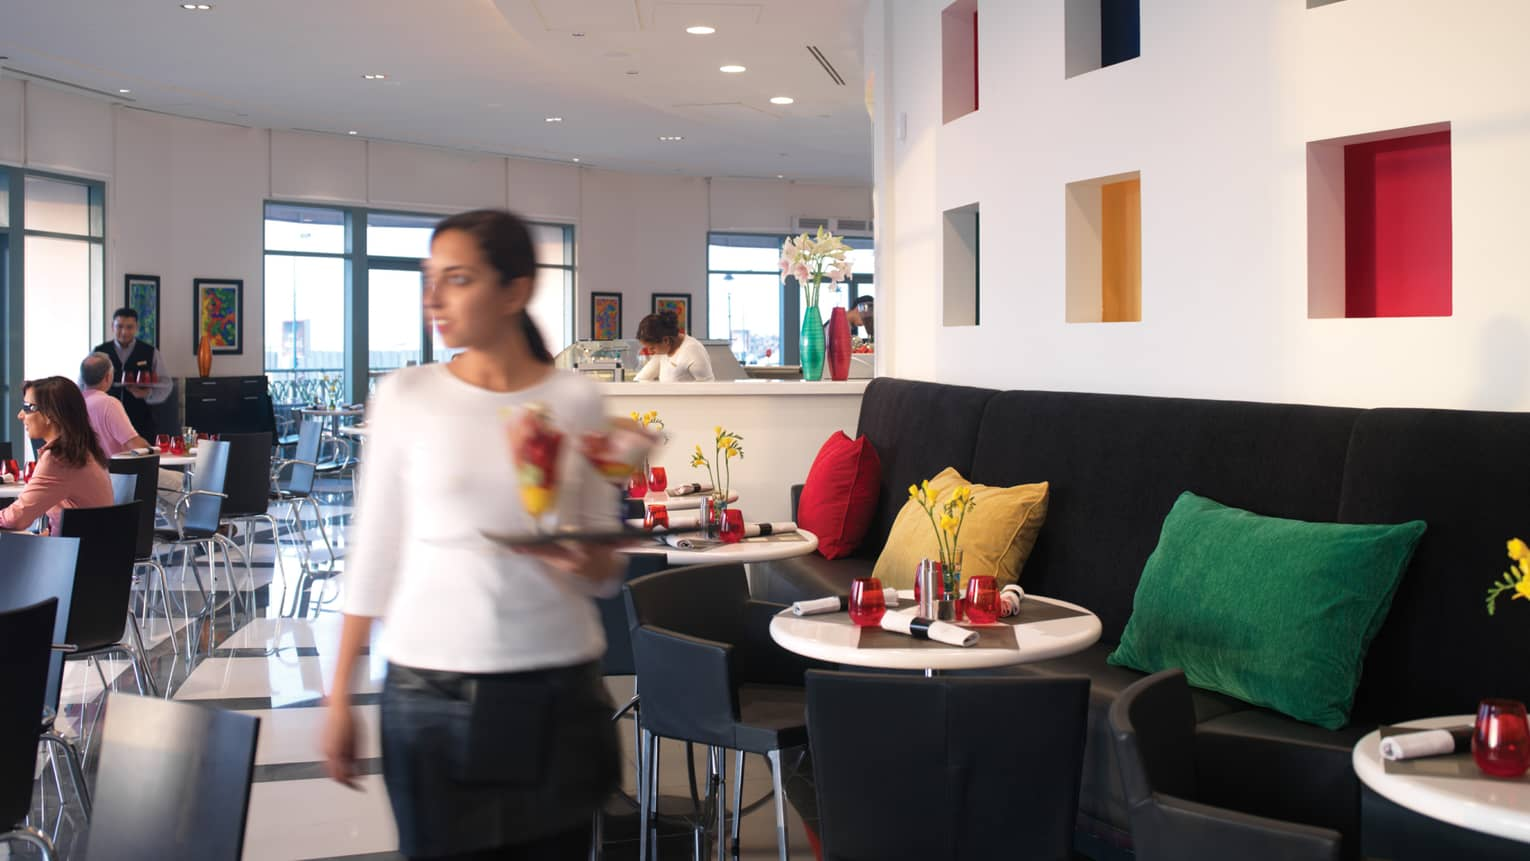 Server with tray of colourful drinks walks through sunny dining room of Fresca Café and Gelateria